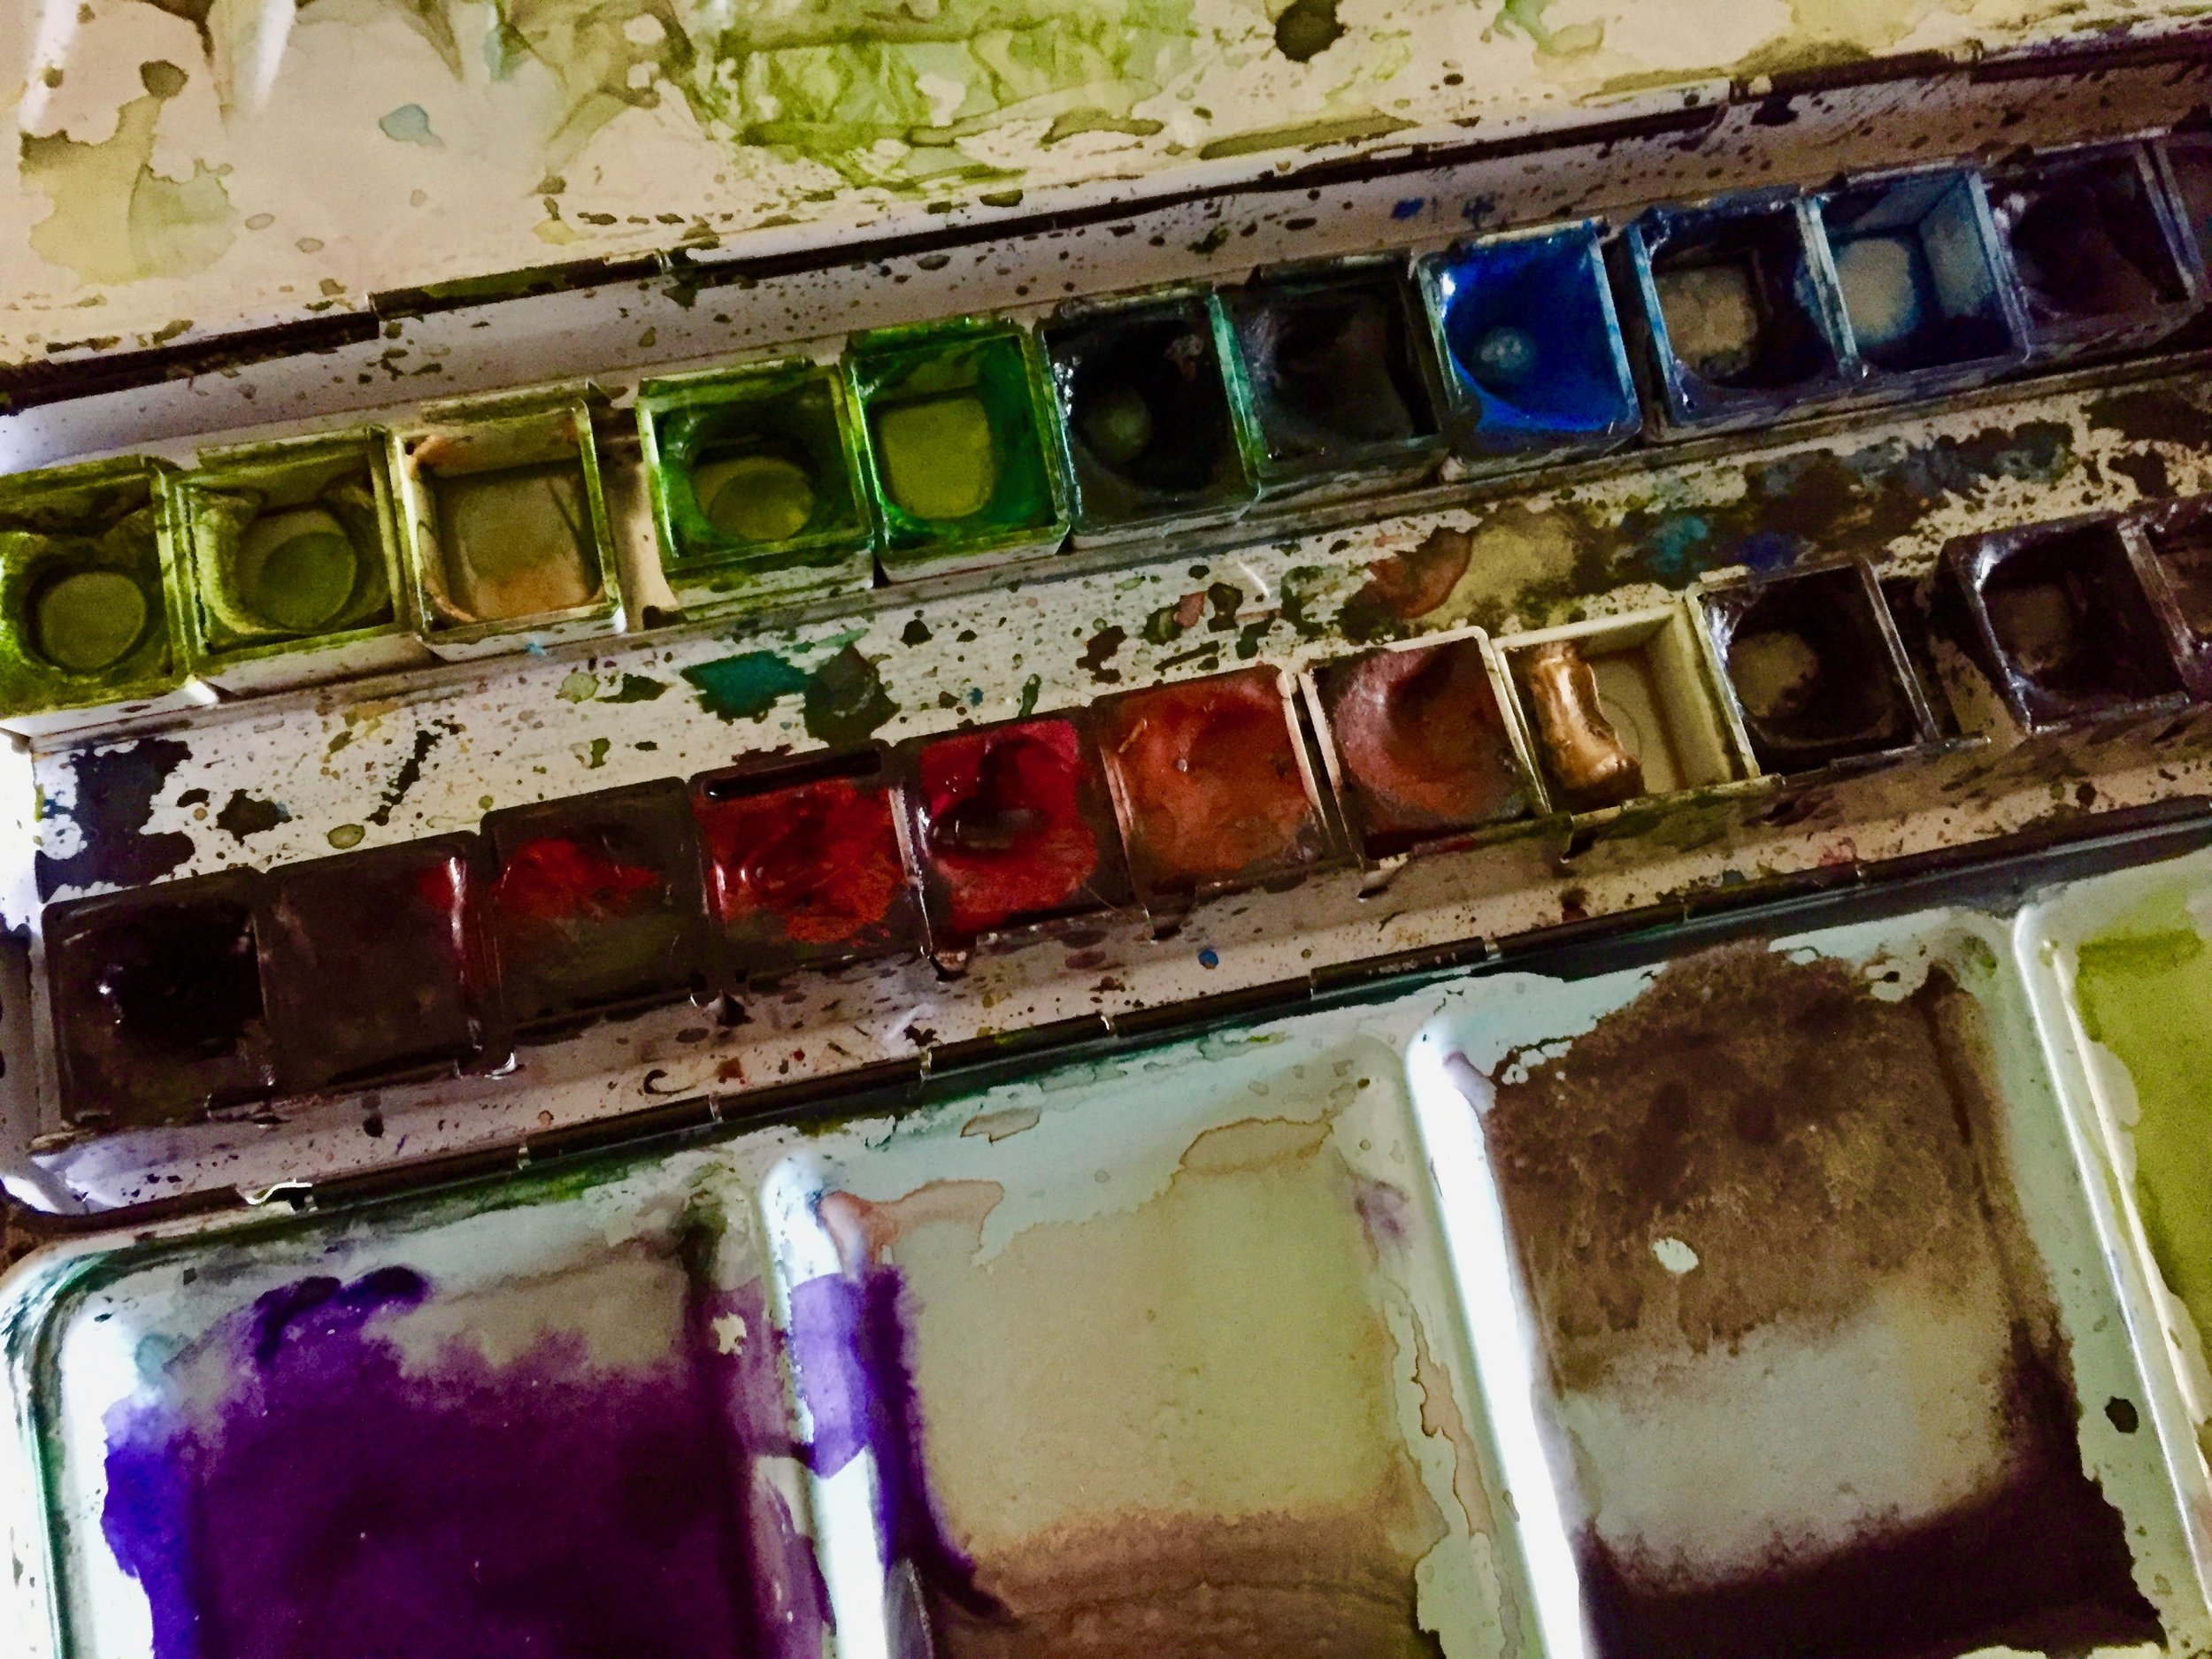 MY PAINTS - I prefer  a traditional color palette, as used by early Impressionist painters.  I use the Sennelier Watercolors line and Winsor Newton Gouche.  All these paints  are lightfast and have a high honey content, giving a smooth consistency and extraordinary luminosity.